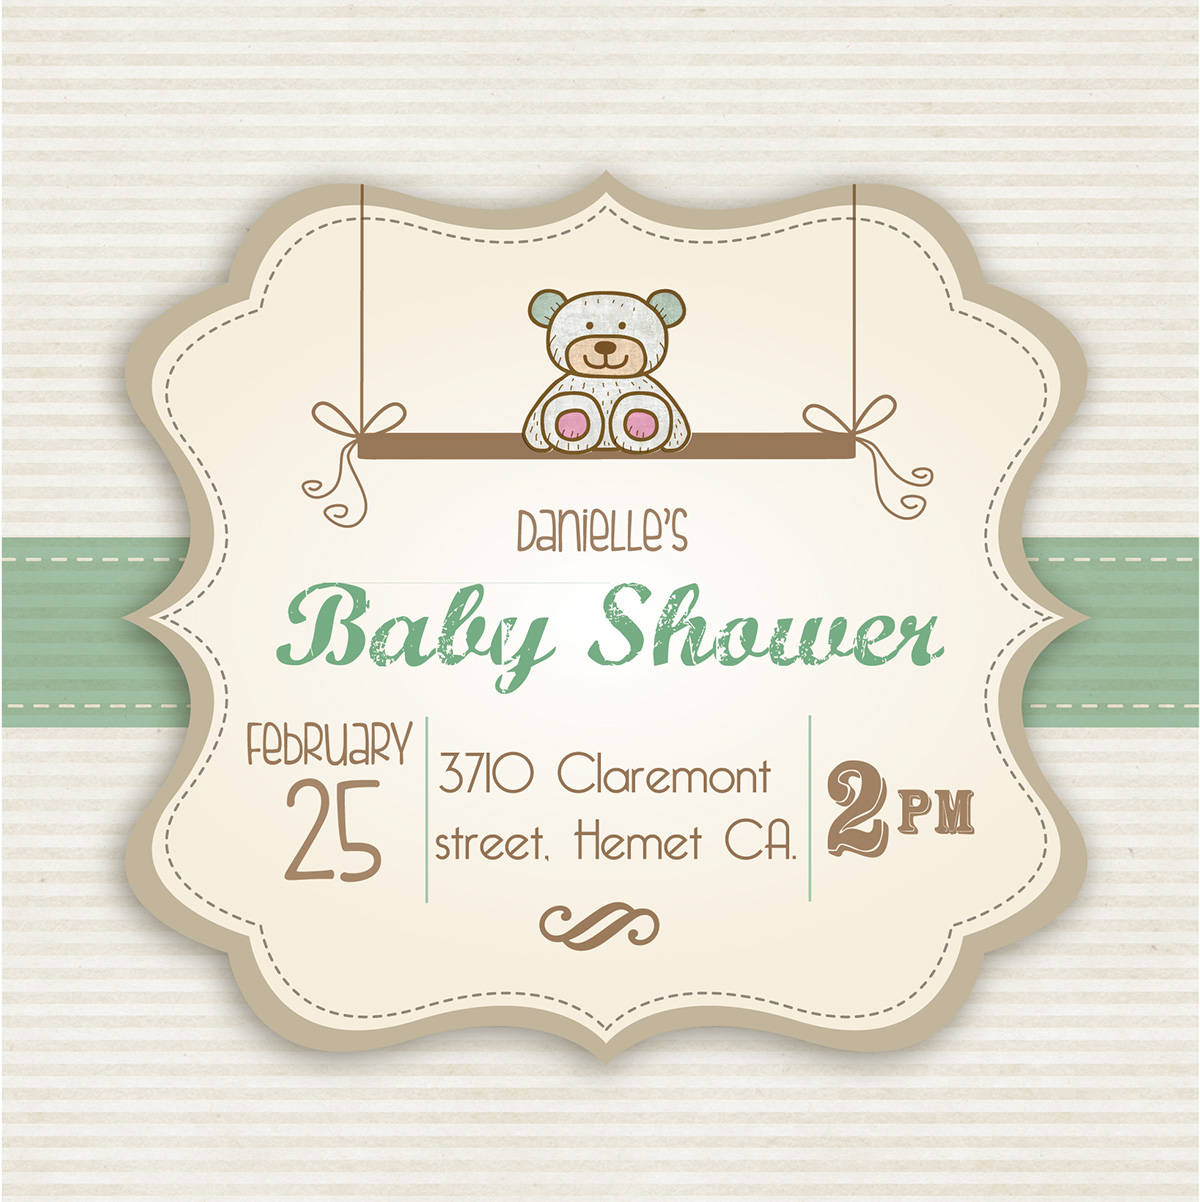 baby shower invitation in illustration